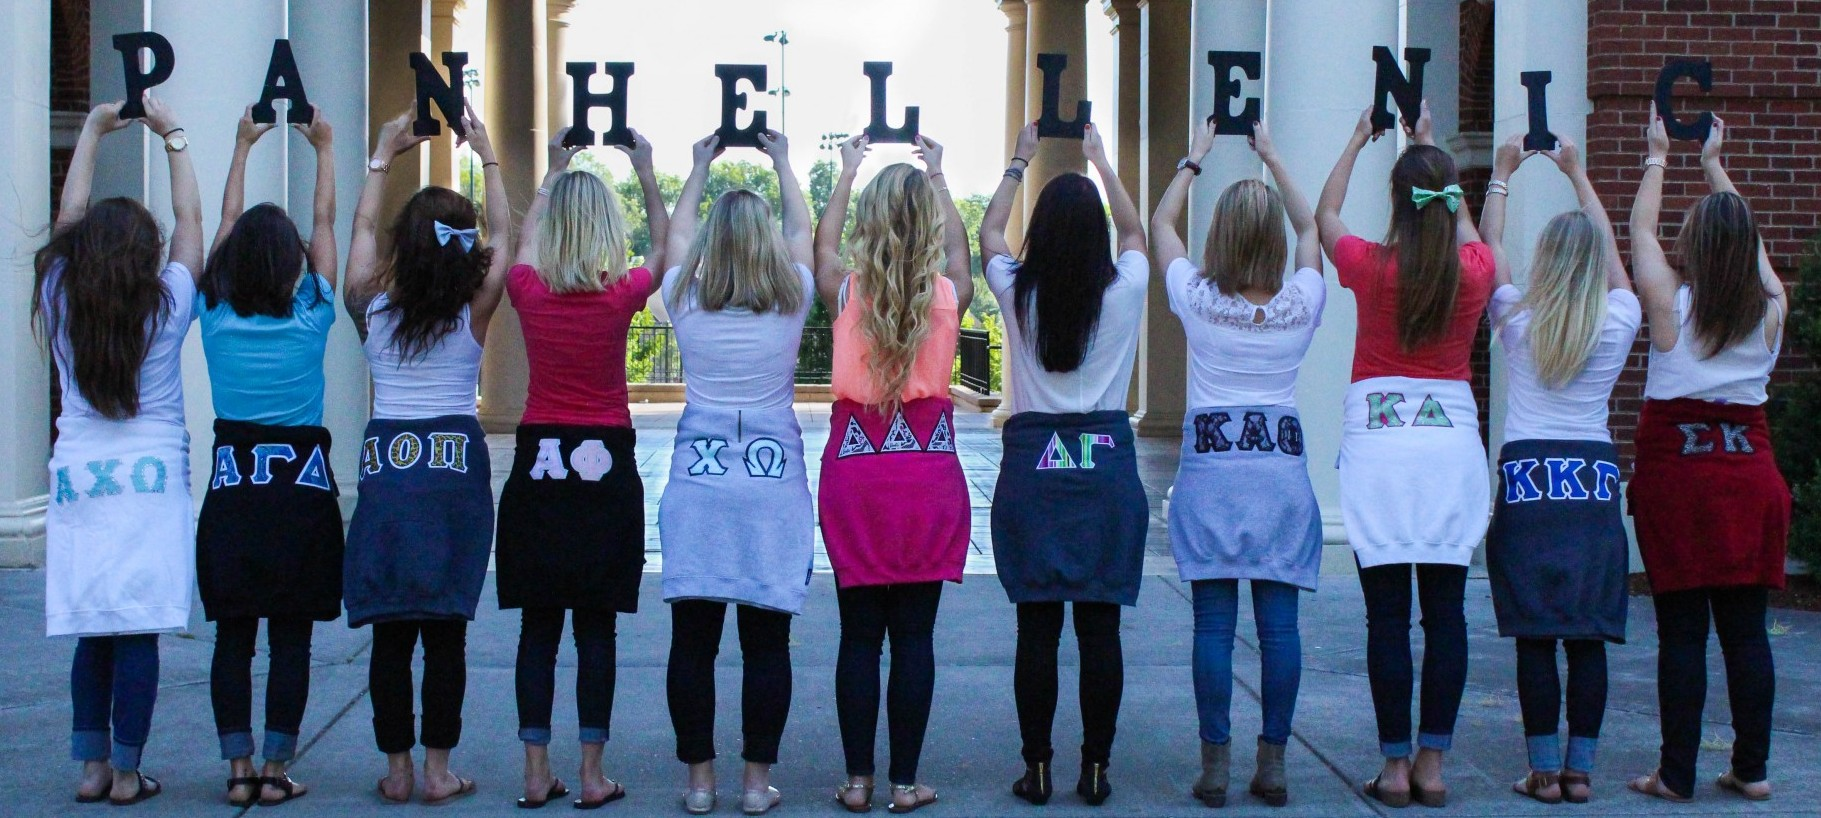 Panhellenic Fall Formal Recruitment